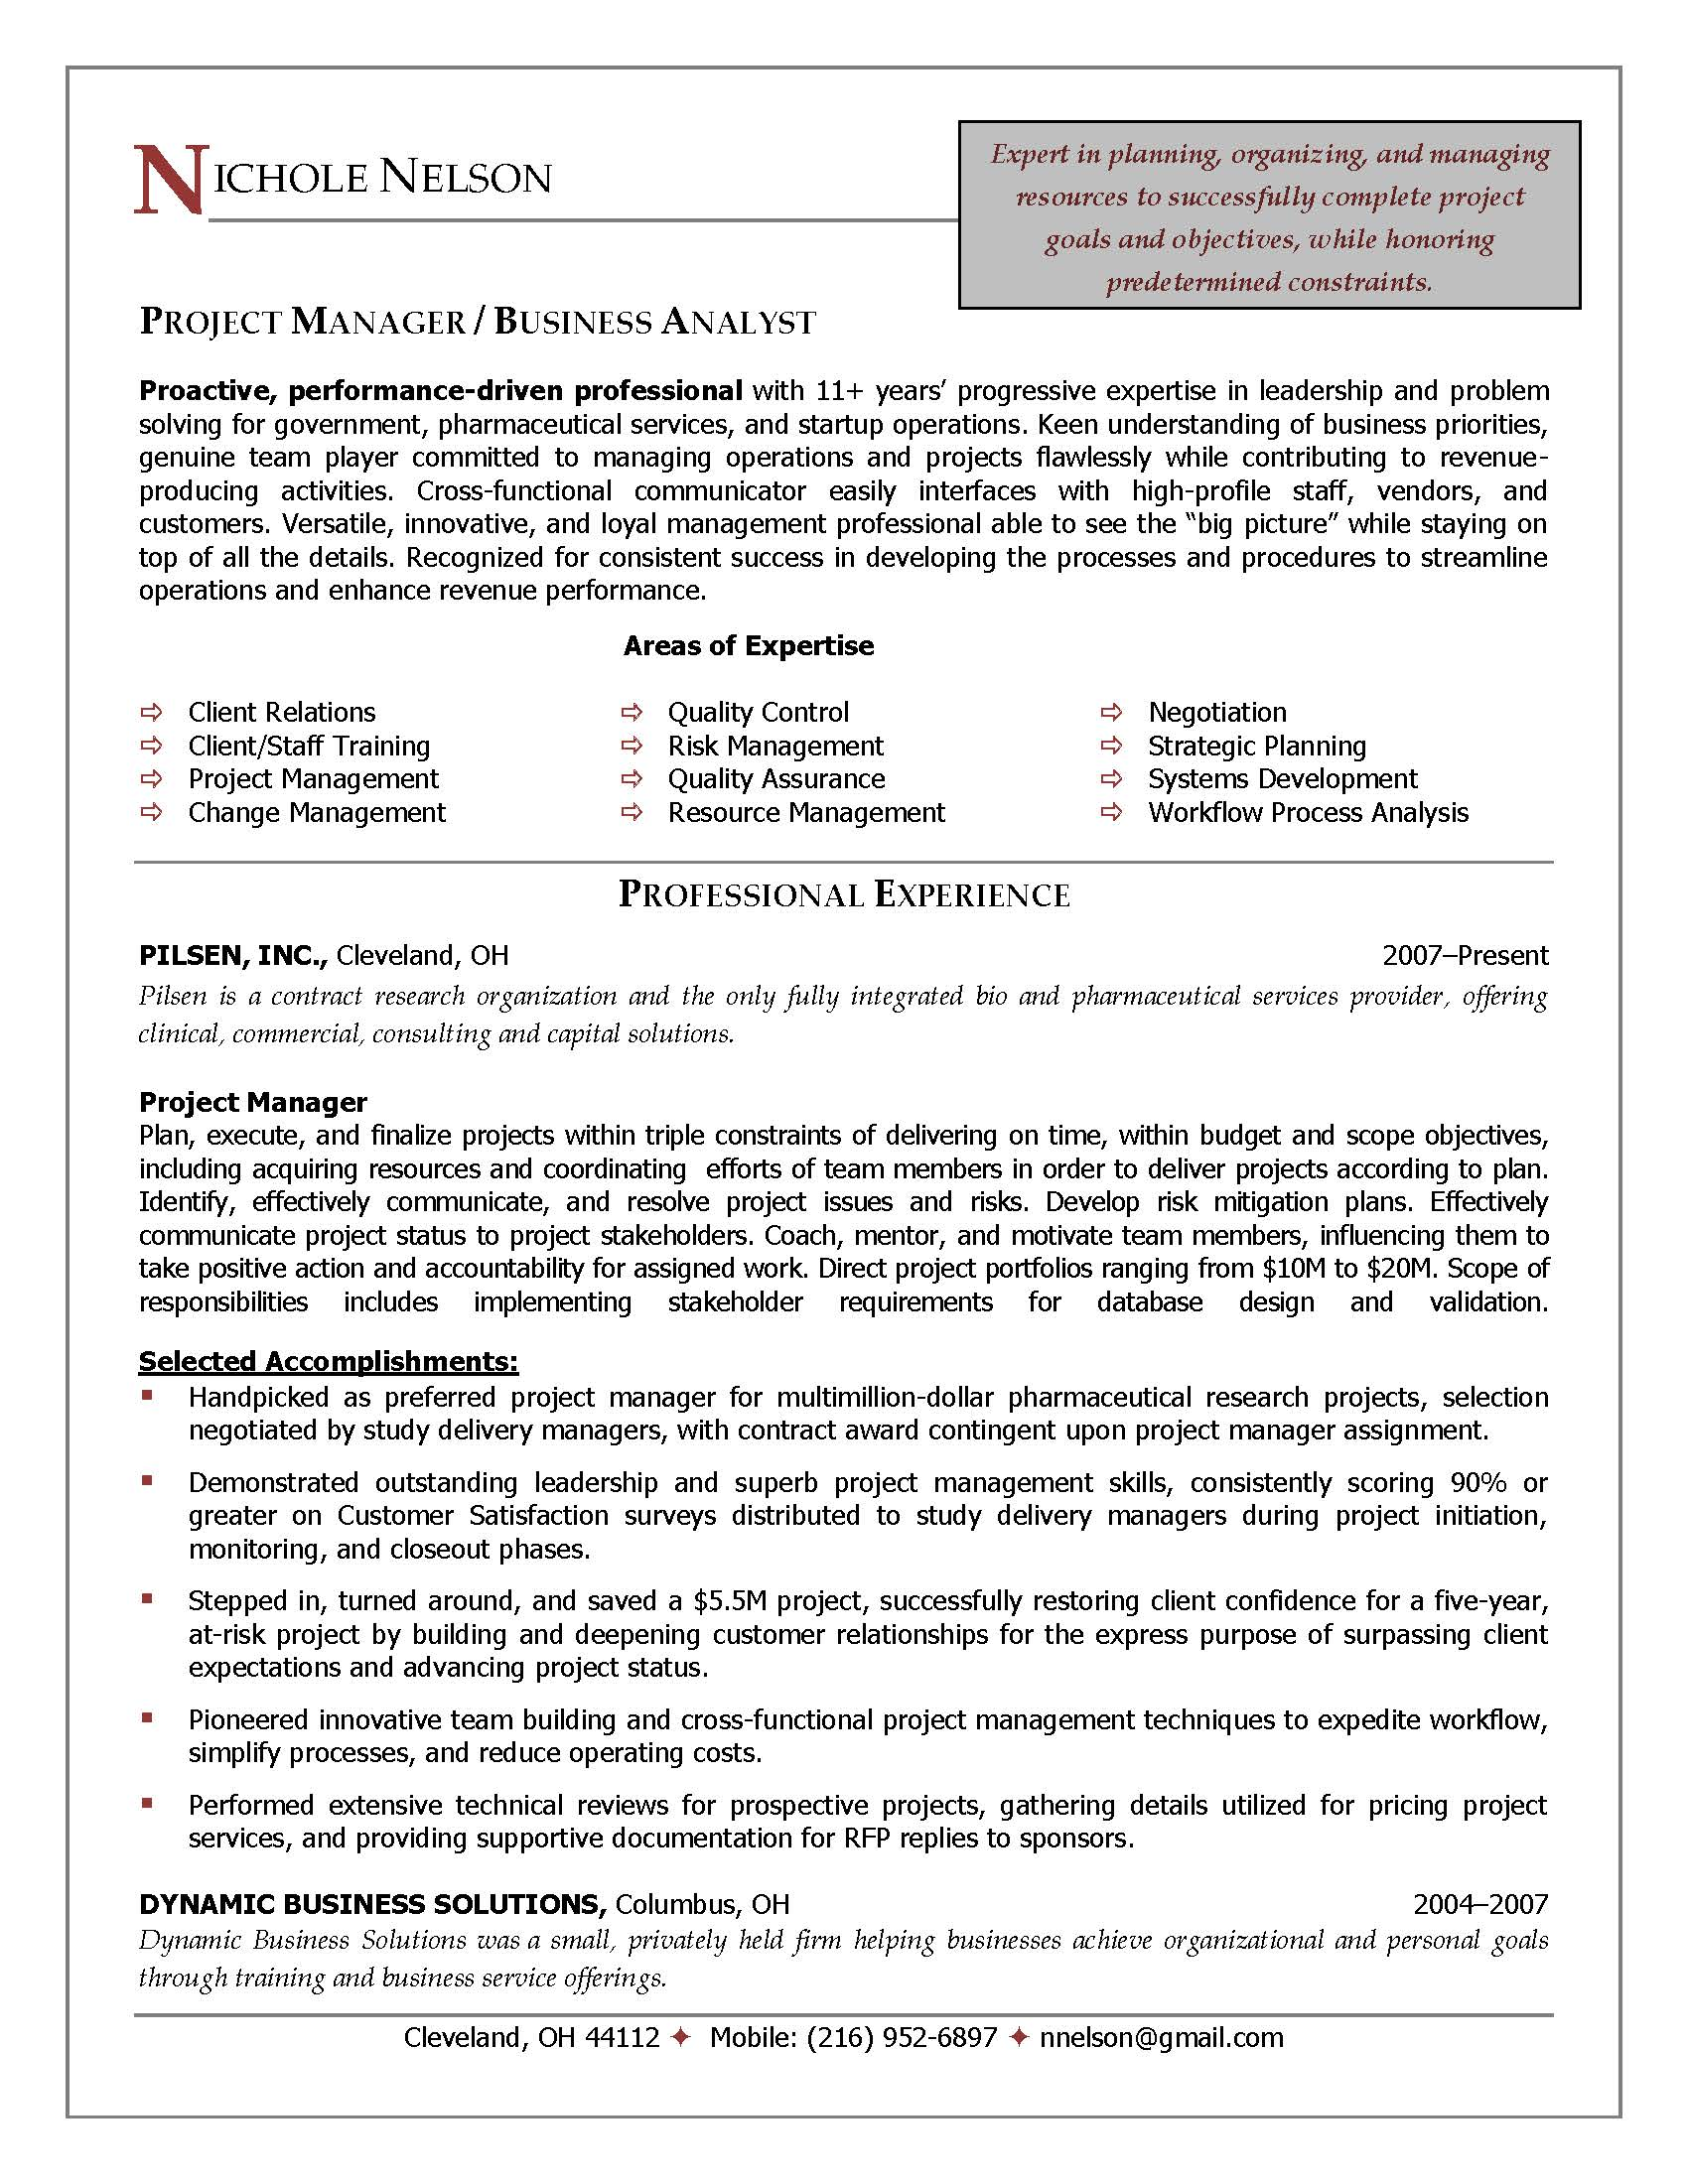 project manager resume sample, provided by Elite Resume Writing Services